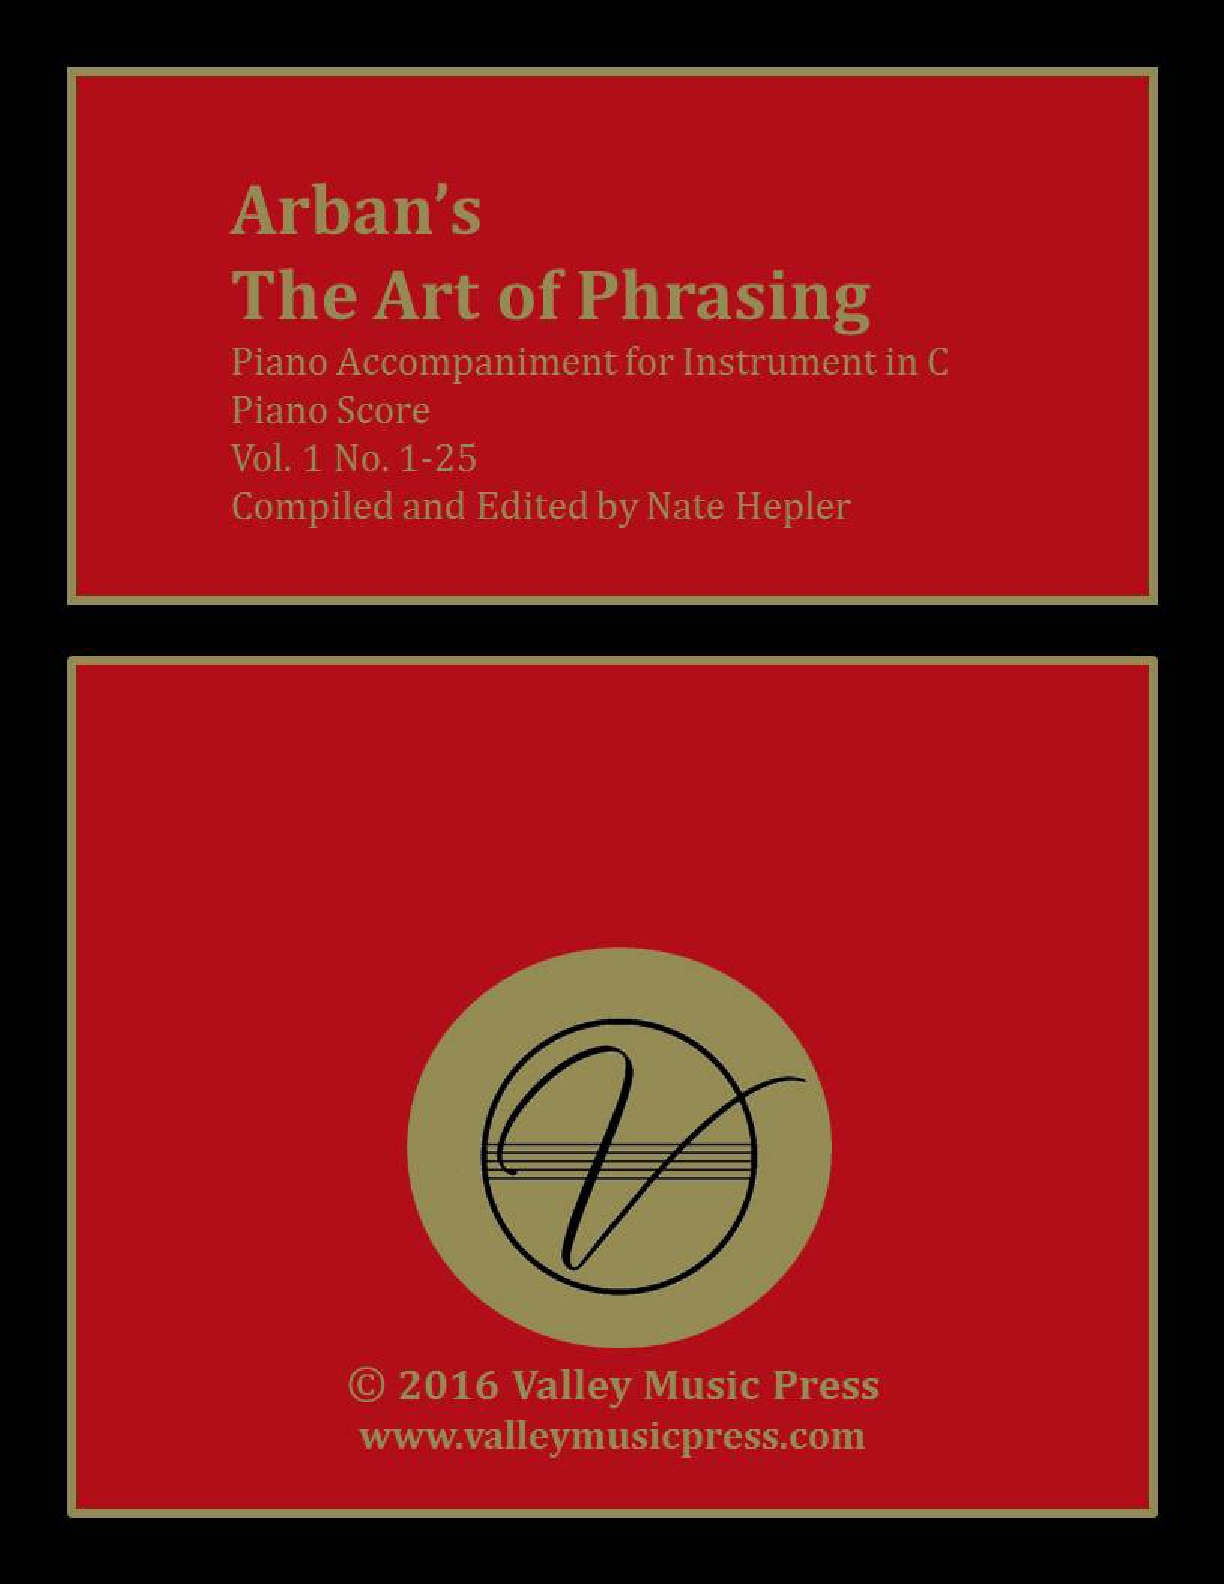 Arban Art of Phrasing Piano Accompaniment Vol. 1 No. 1-25 (C) - Click Image to Close